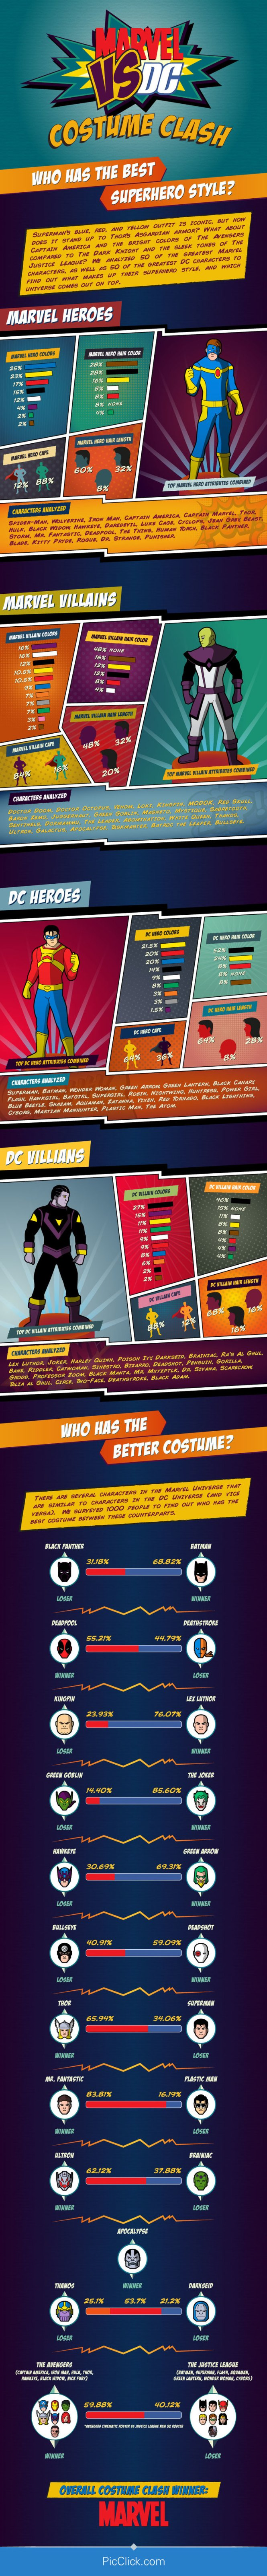 Marvel vs DC Costume Clash Infographic